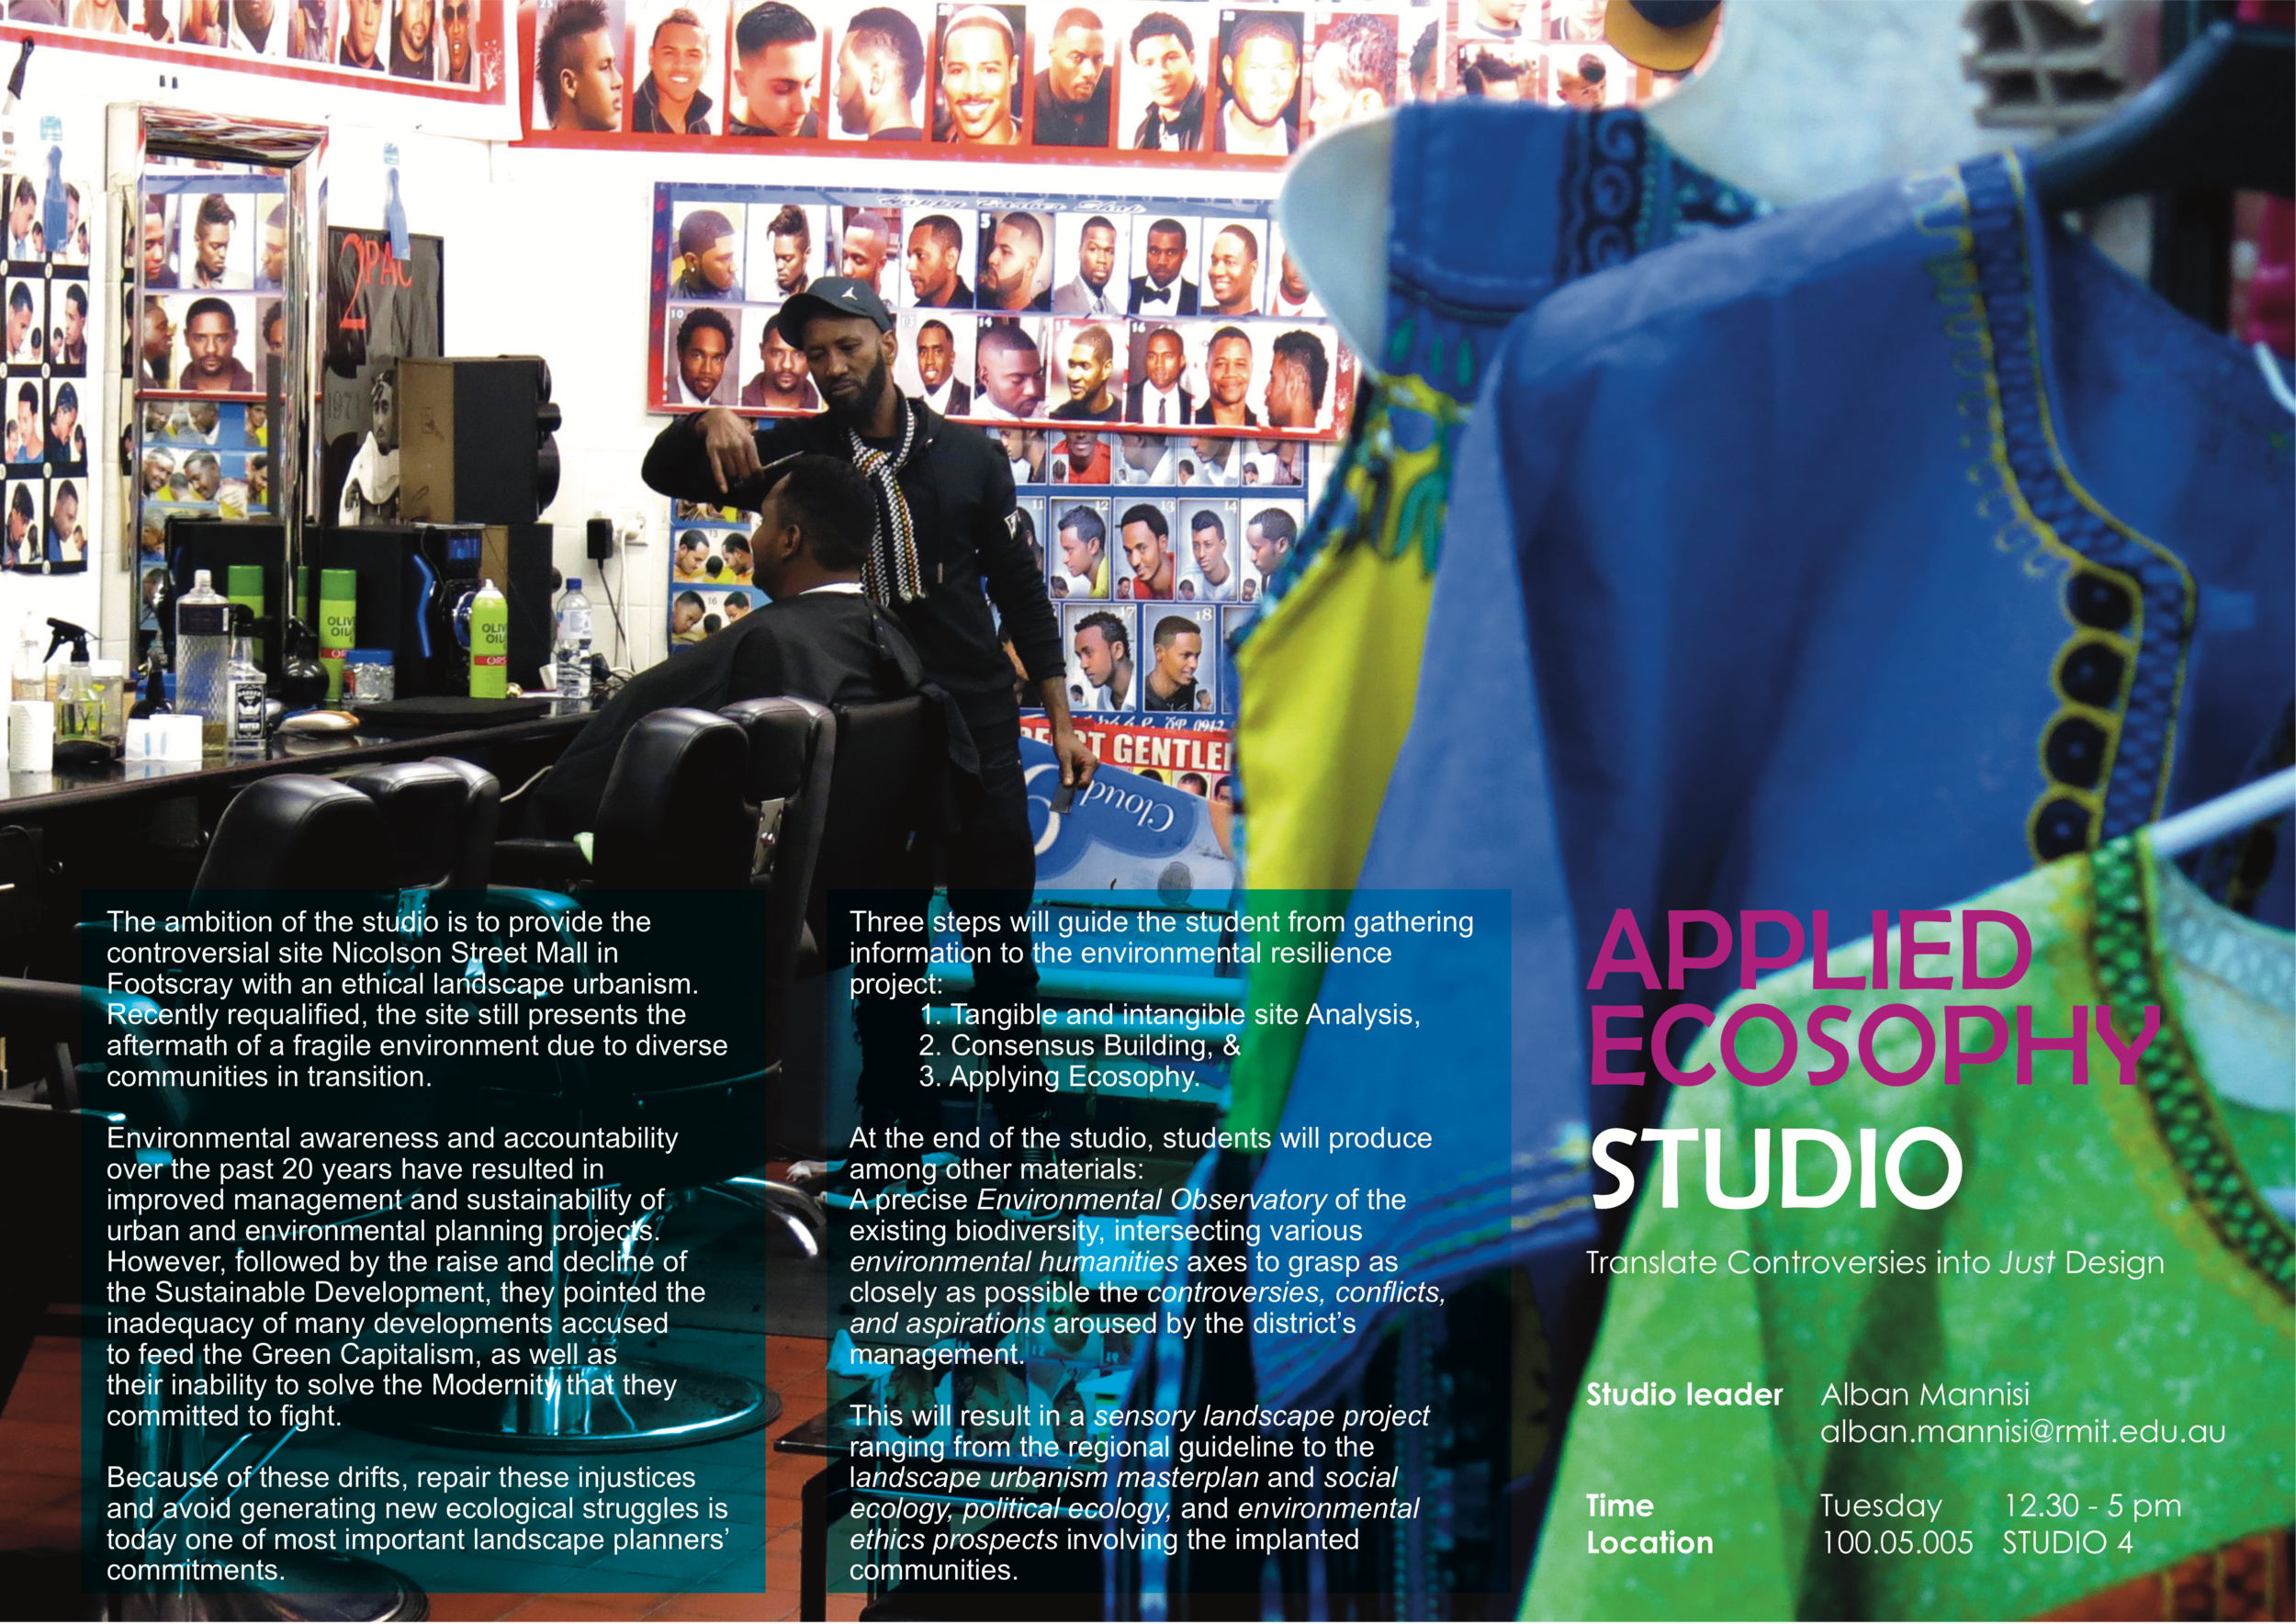 APPLIED_ECOSOPHY_STUDIO_AlbanMANNISI_Studio poster.png